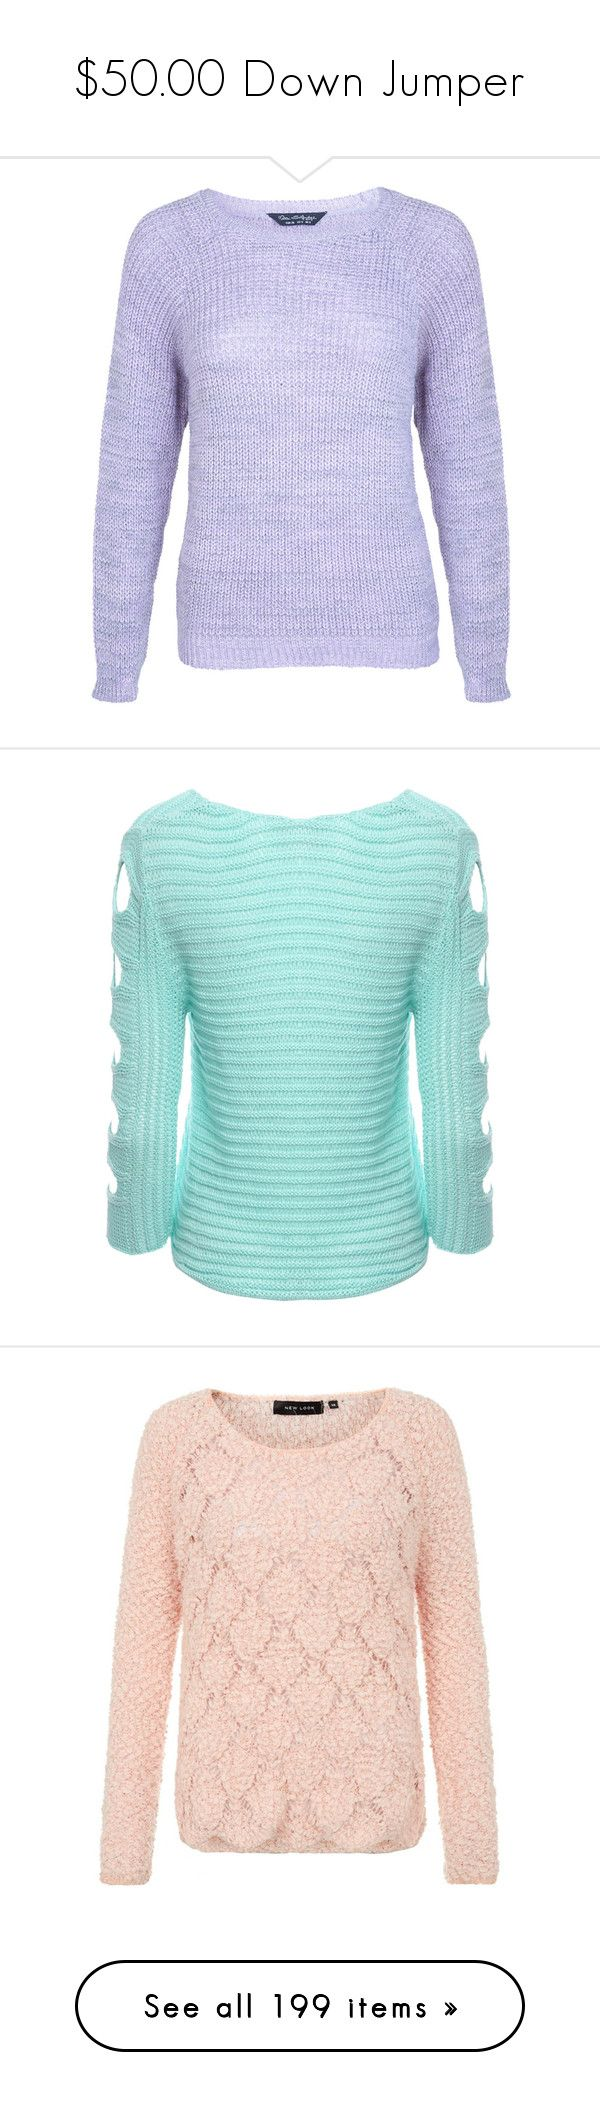 """$50.00 Down Jumper"" by pinky-chocolatte ❤ liked on Polyvore featuring tops, sweaters, purple, jumper top, acrylic sweater, miss selfridge, fisherman knit sweater, purple top, aqua and 3/4 sleeve sweaters"